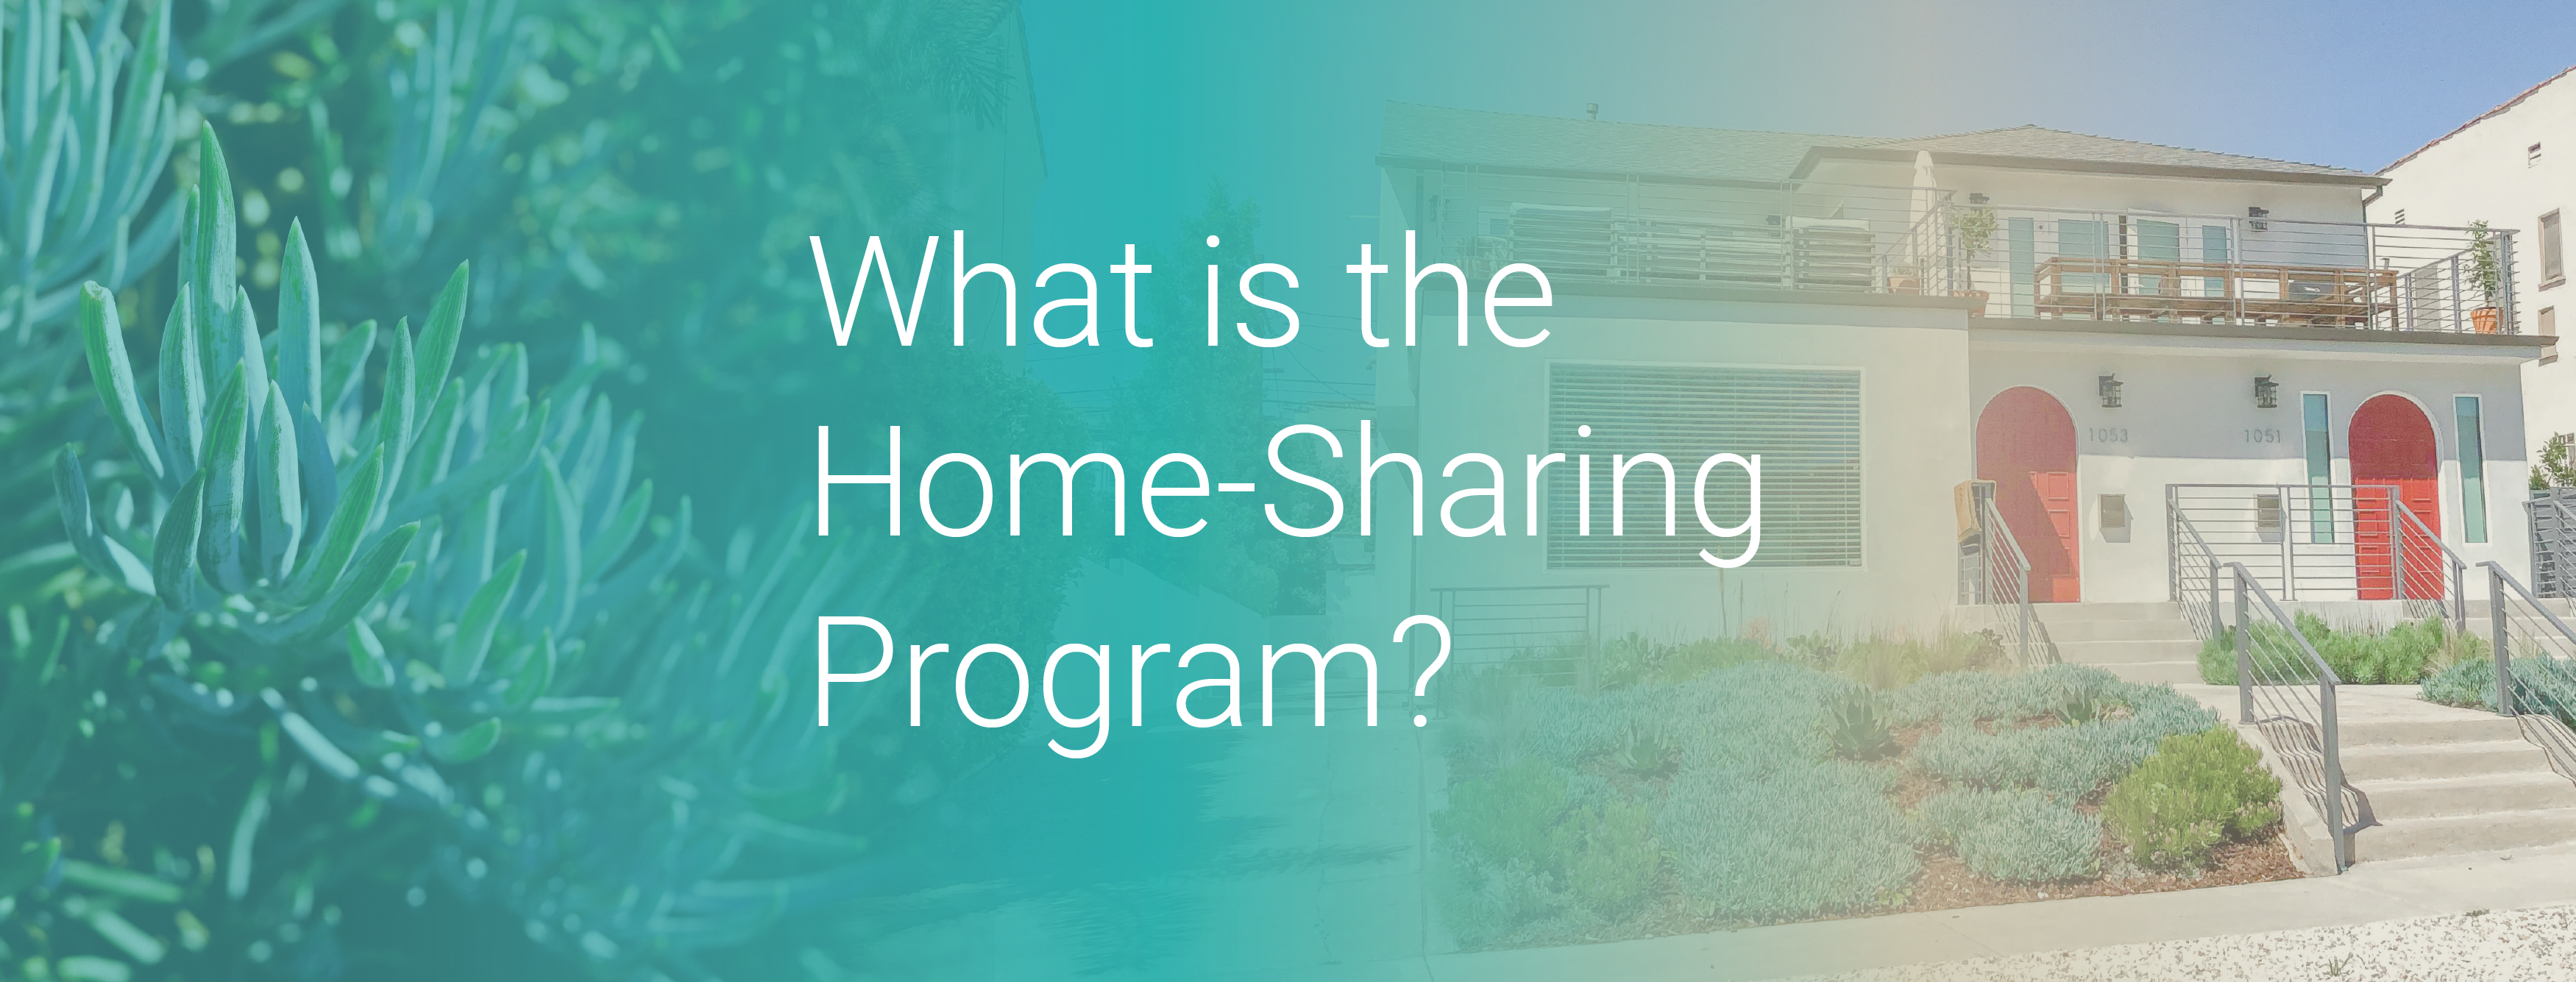 What is the Home-Sharing Program?